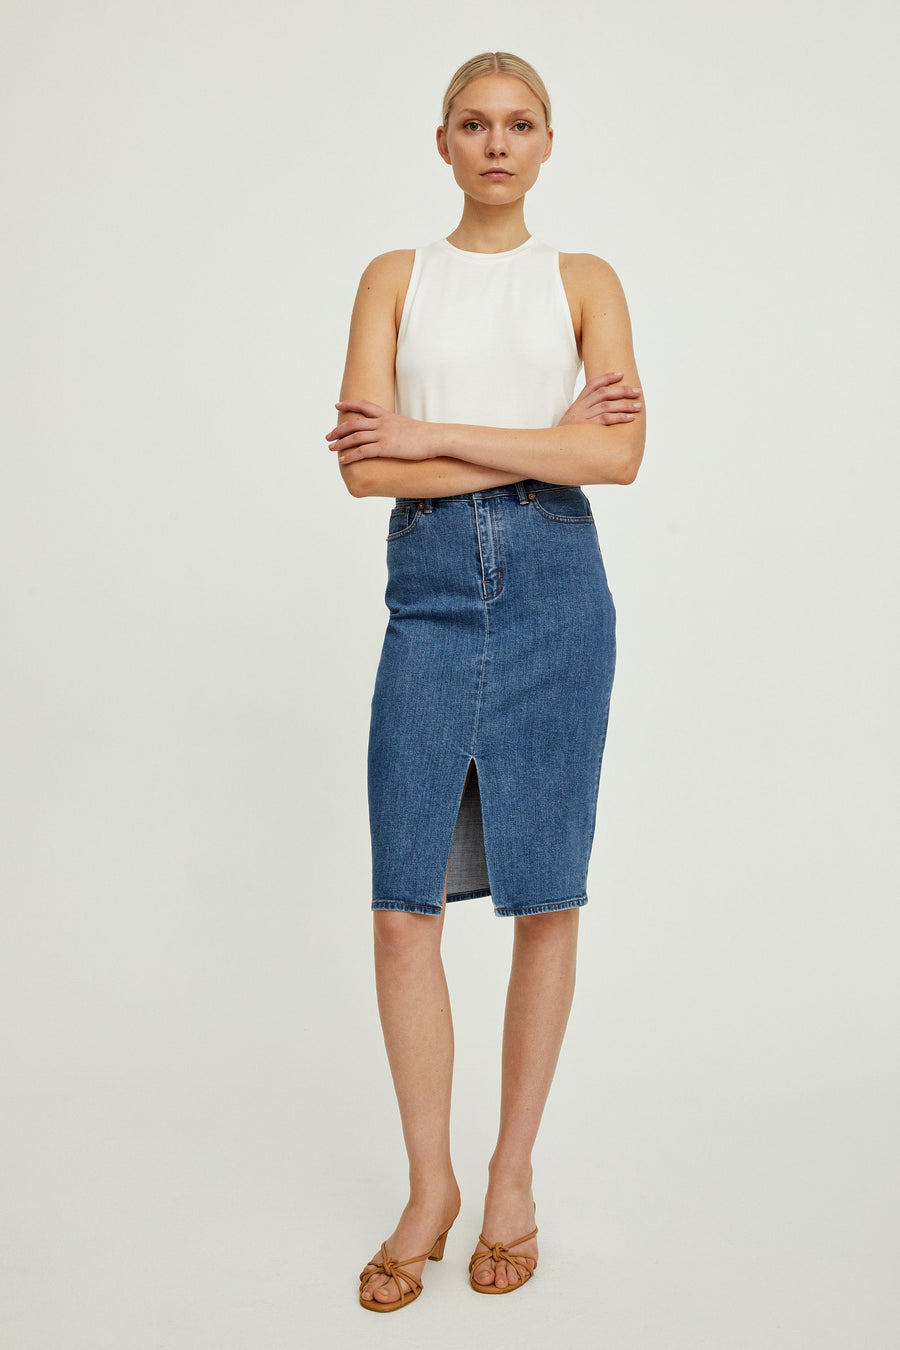 KASSANDRA SKIRT - DENIM BLUE Skirt Stylein